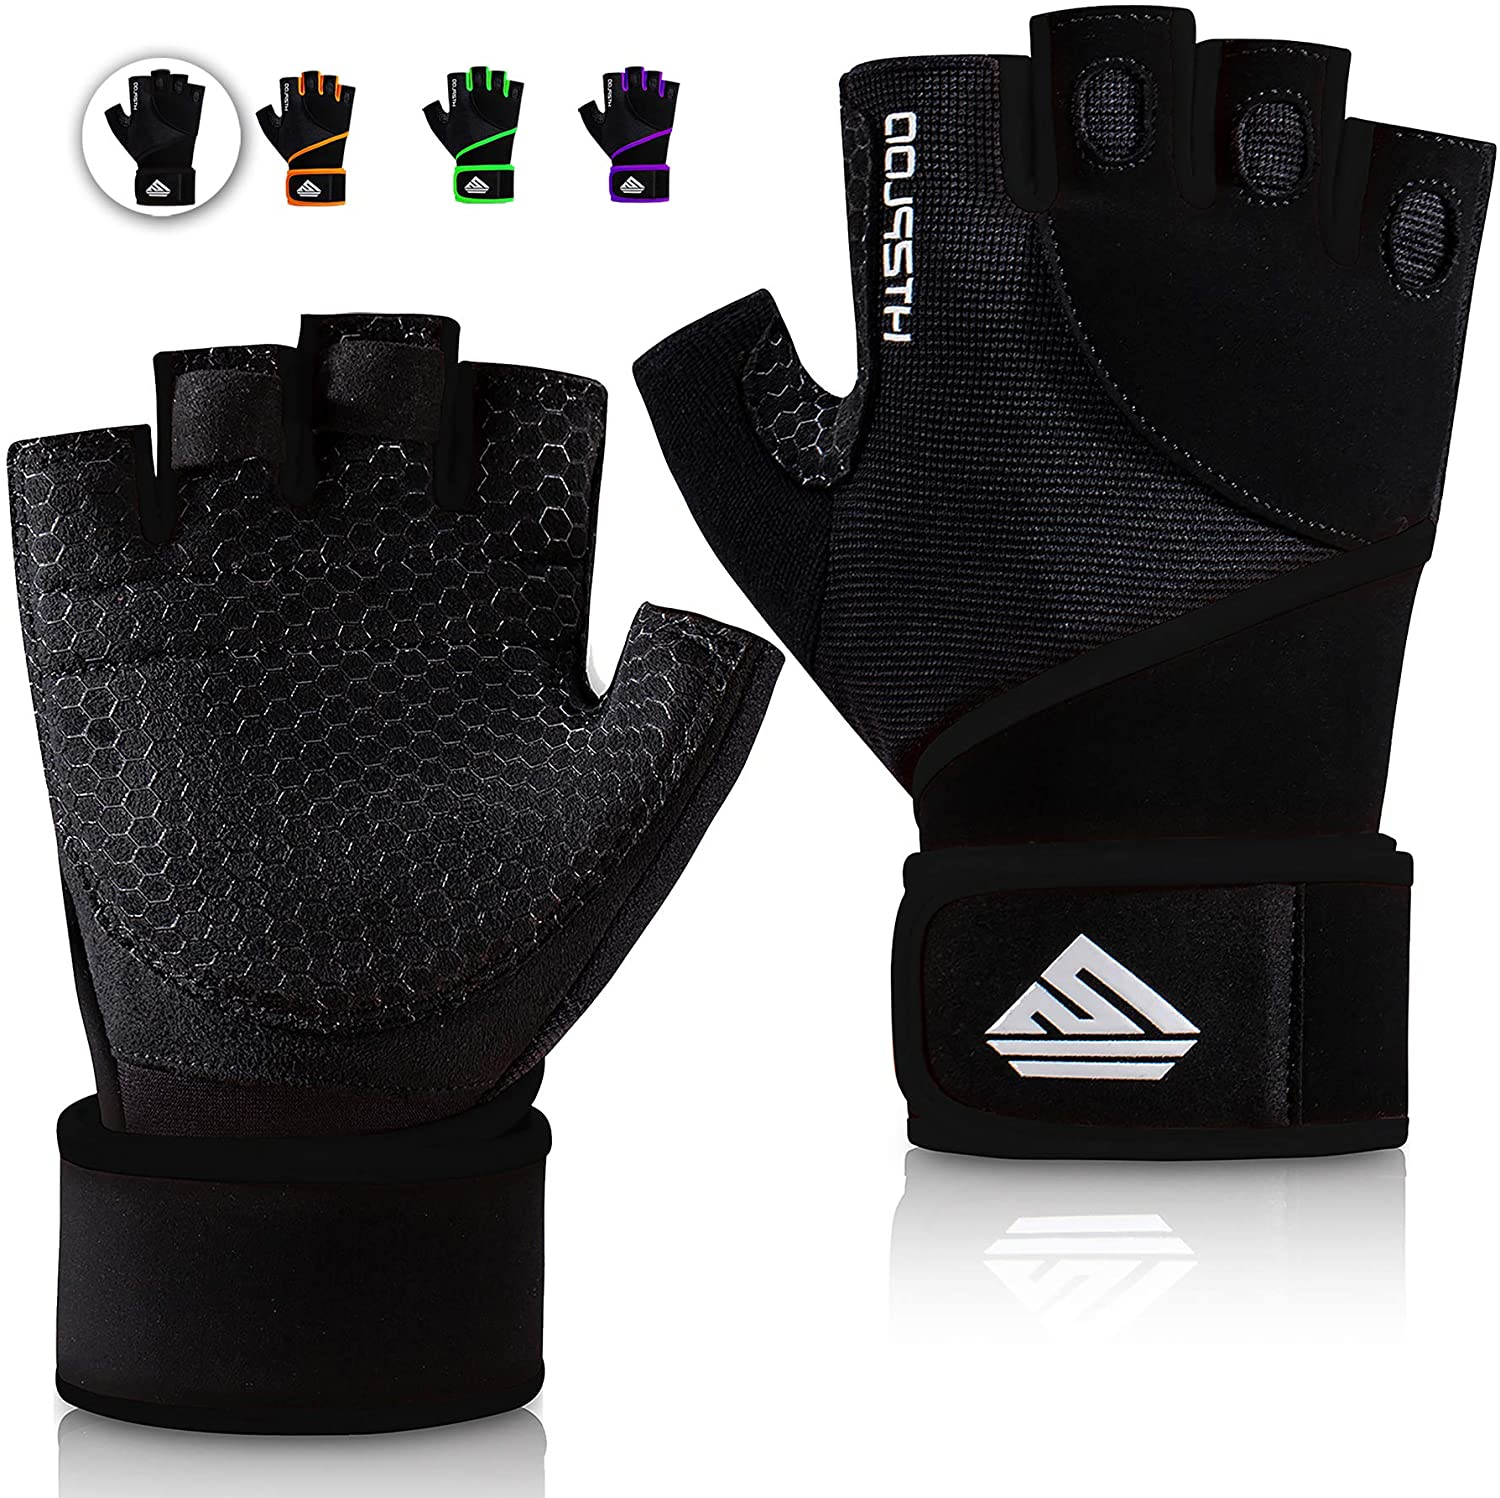 HT2PLOO Workout Gloves